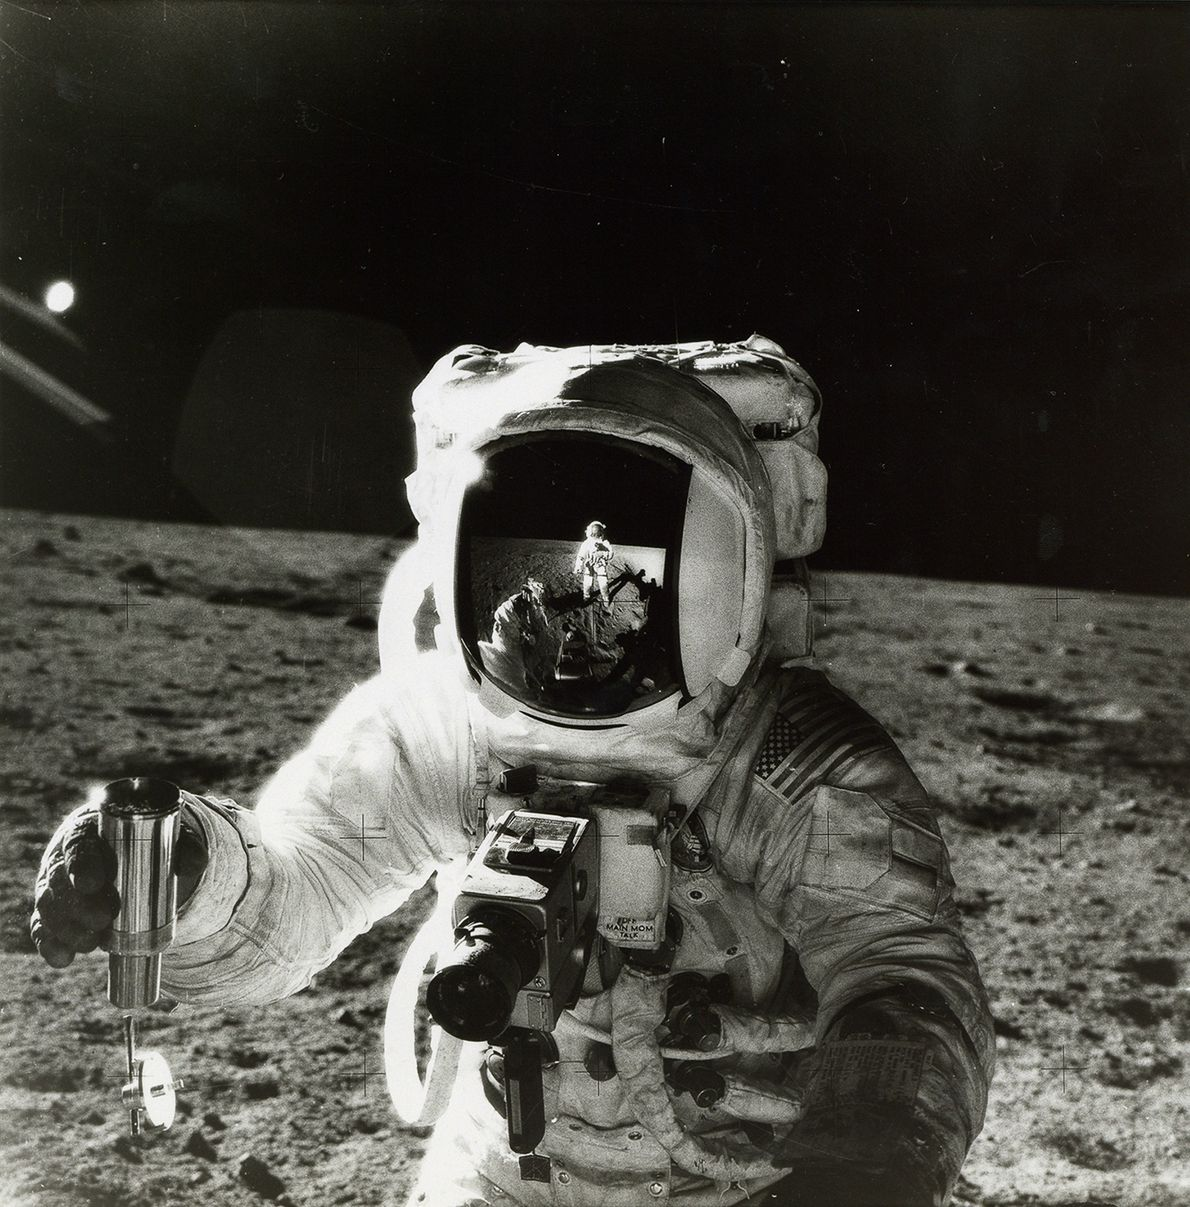 Astronaut Alan Bean holds a container of lunar soil in this 1969 photo from the Apollo 12 mission.